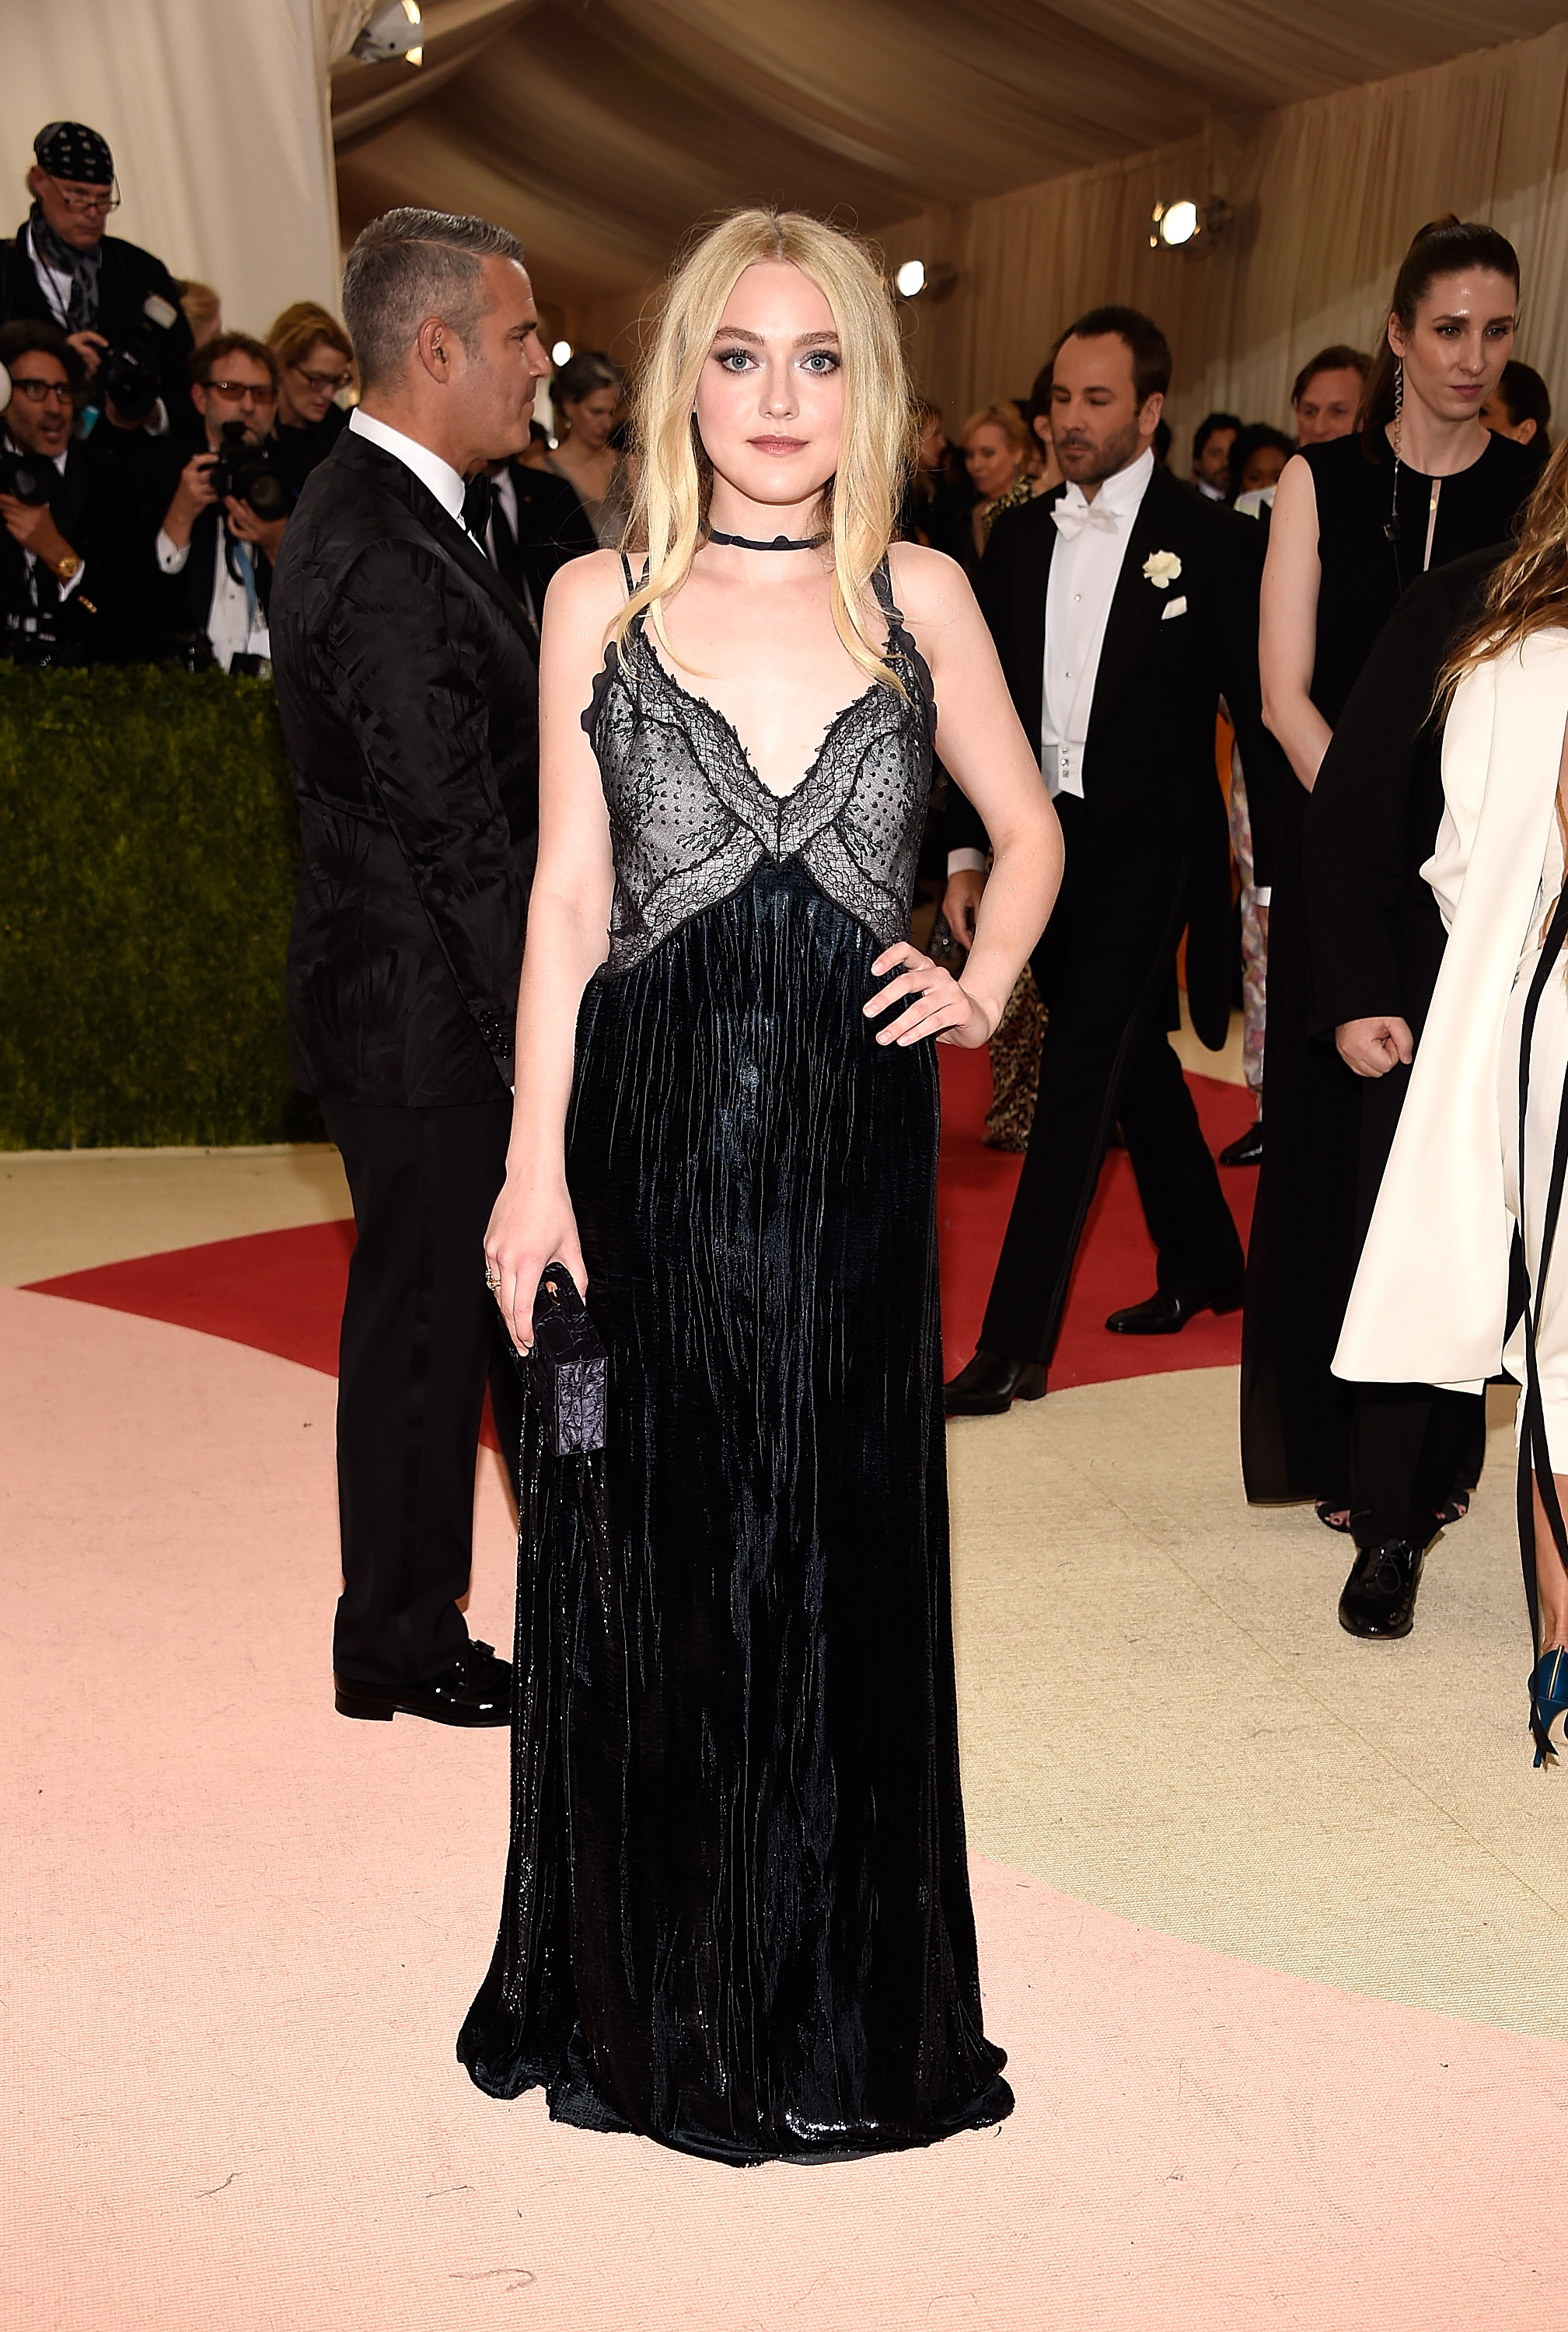 Dakota Fanning attends  Manus x Machina: Fashion In An Age Of Technology  Costume Institute Gala at Metropolitan Museum of Art on May 2, 2016 in New York City.